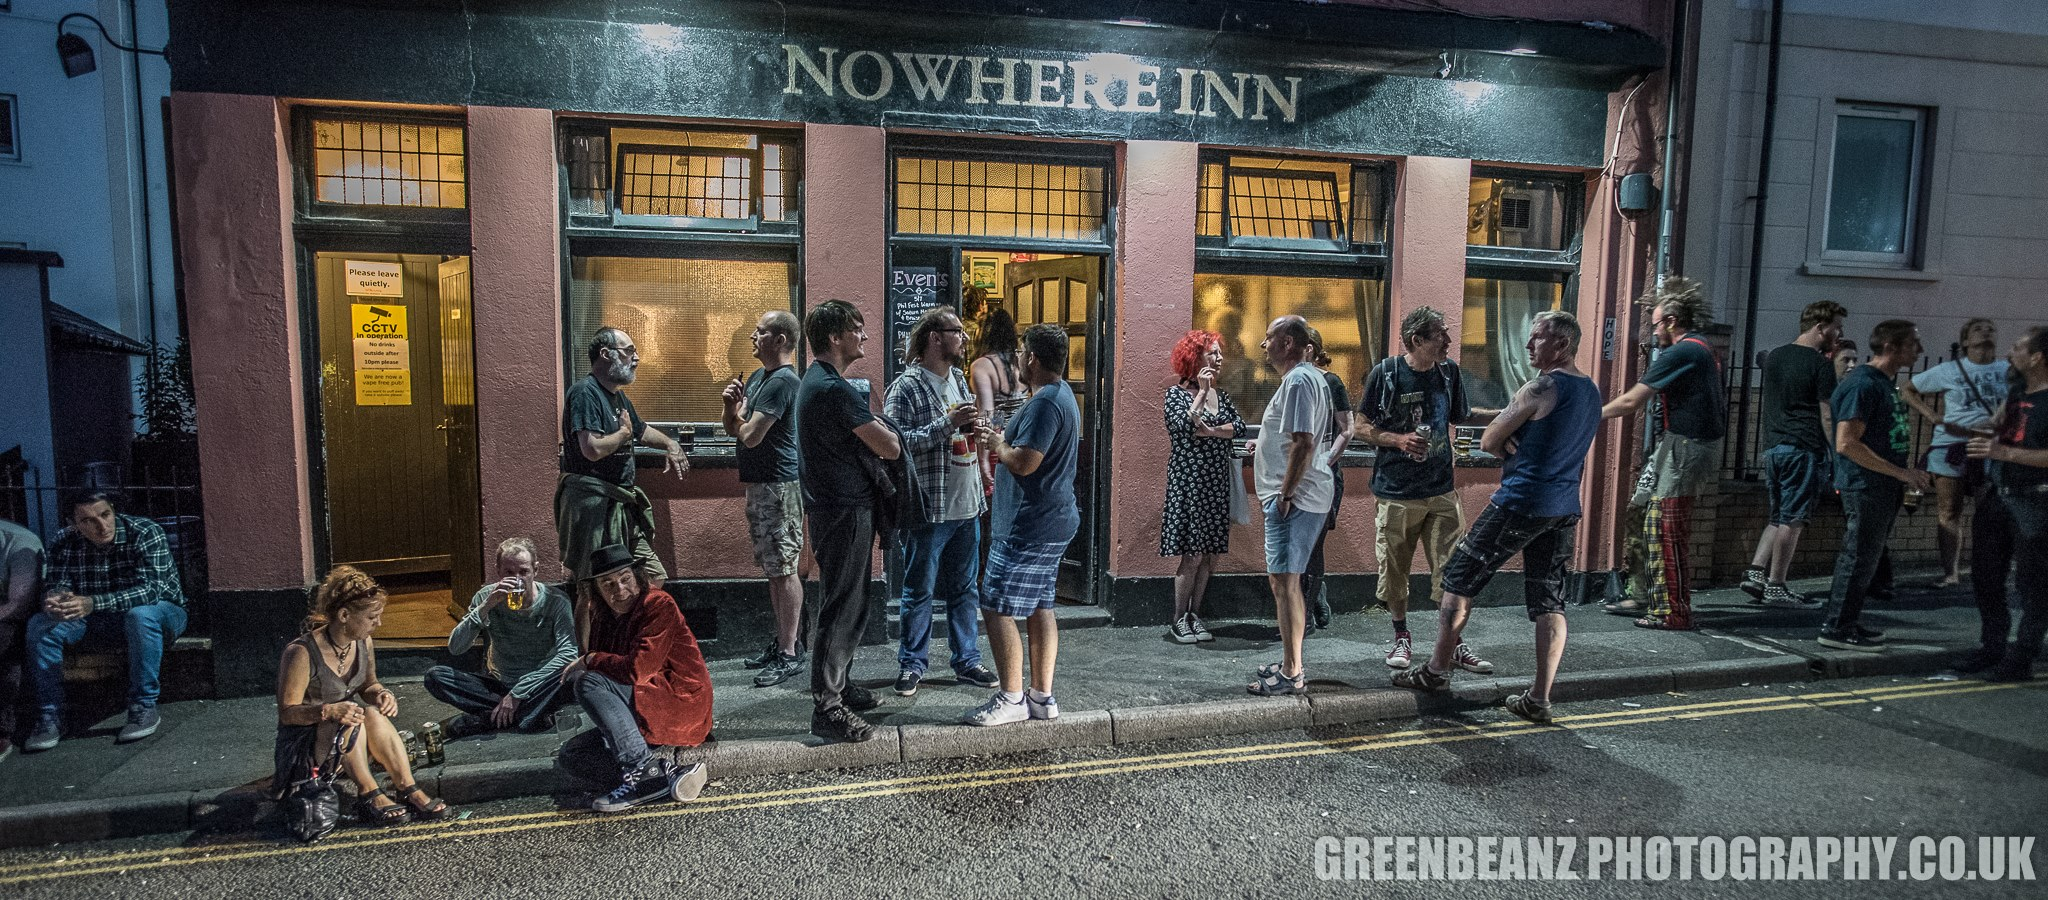 Outside The Nowhere Inn at night Phil Fest 2019